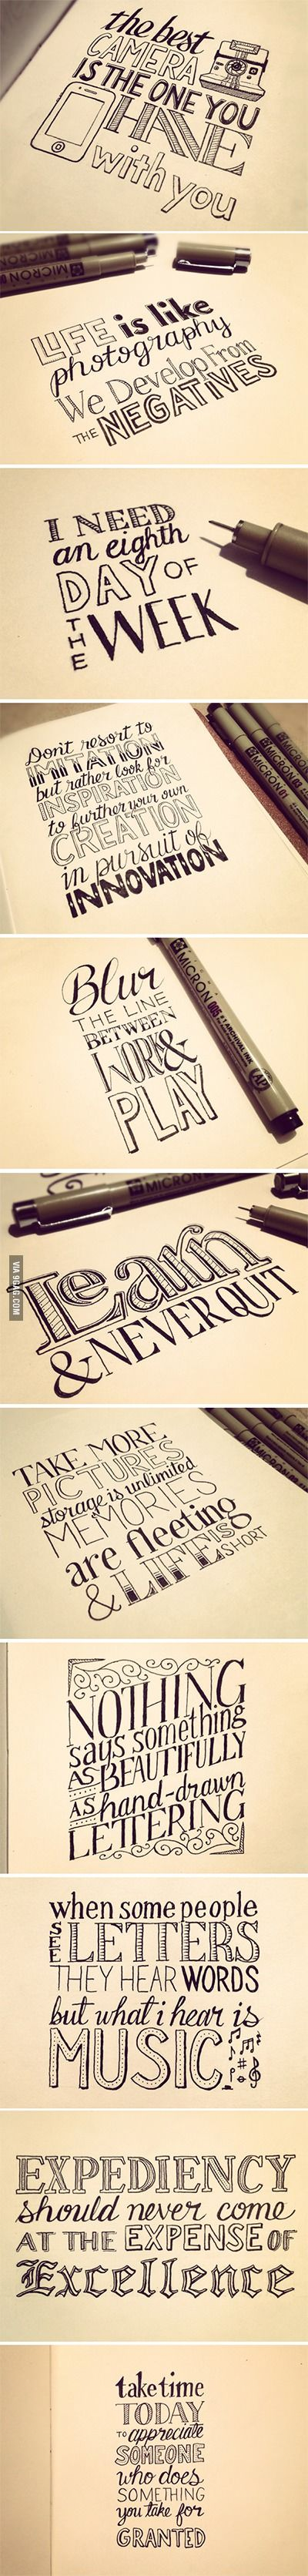 1000 Ideas About Tattoo Lettering Styles On Pinterest: cool caligraphy fonts